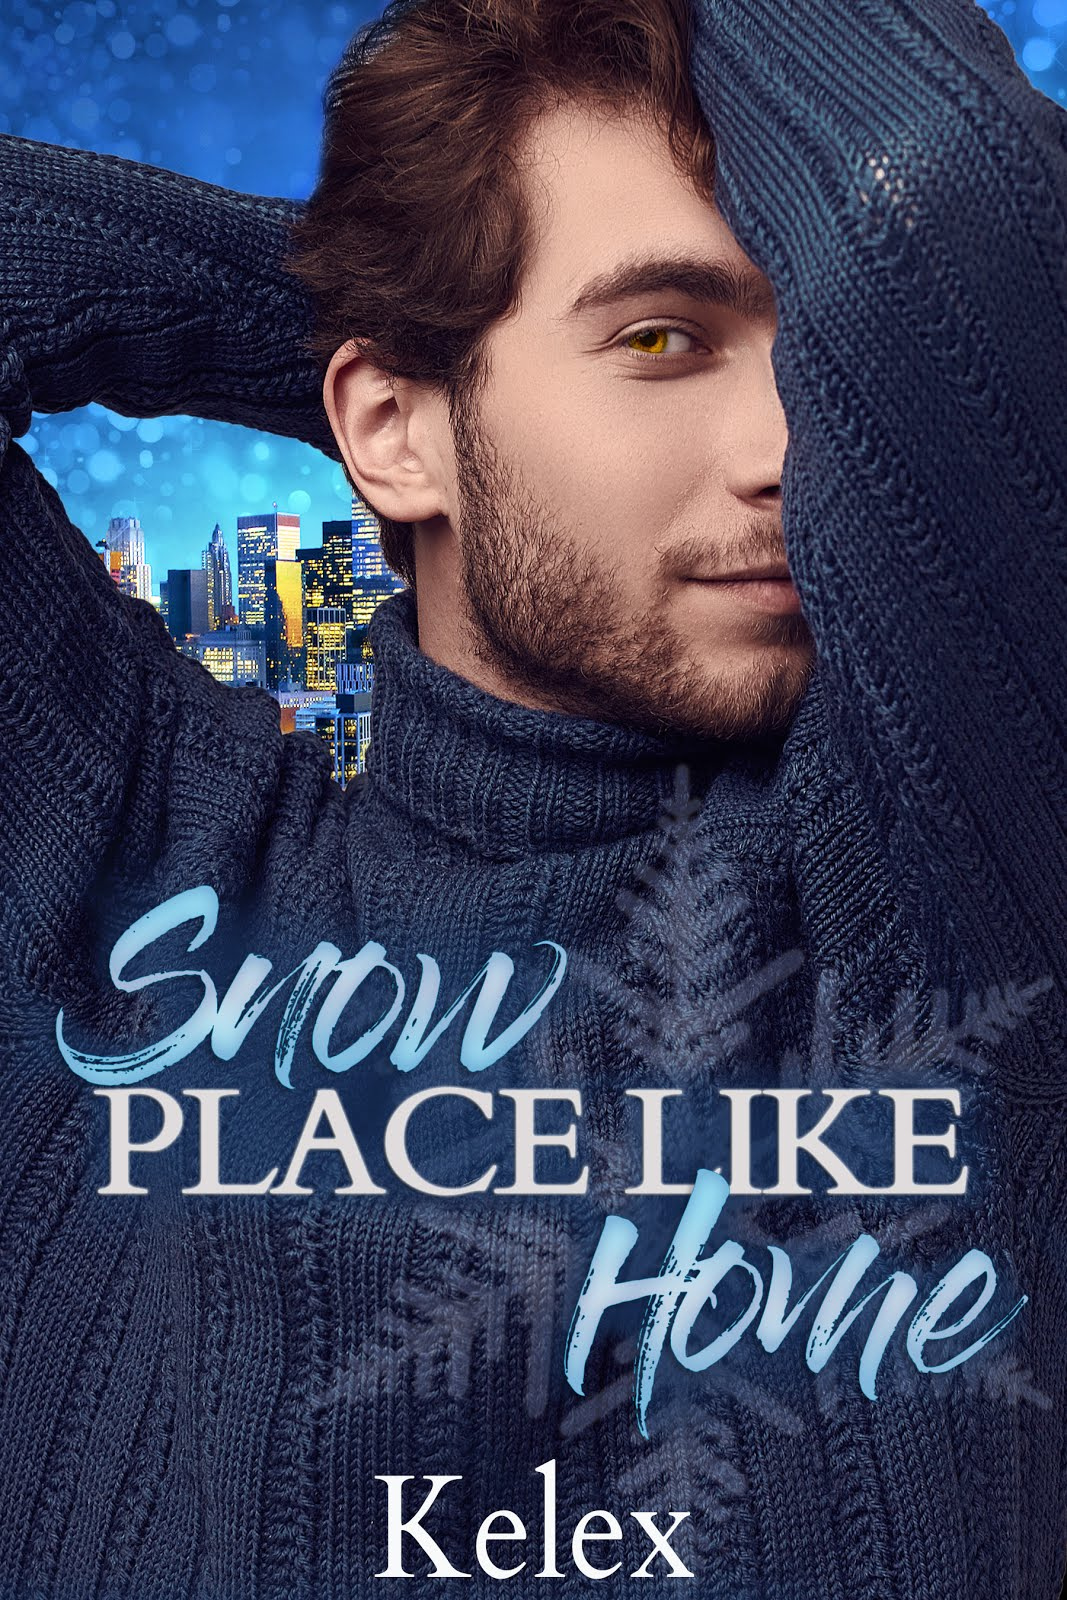 OUT NOW! Snow Place Like Home